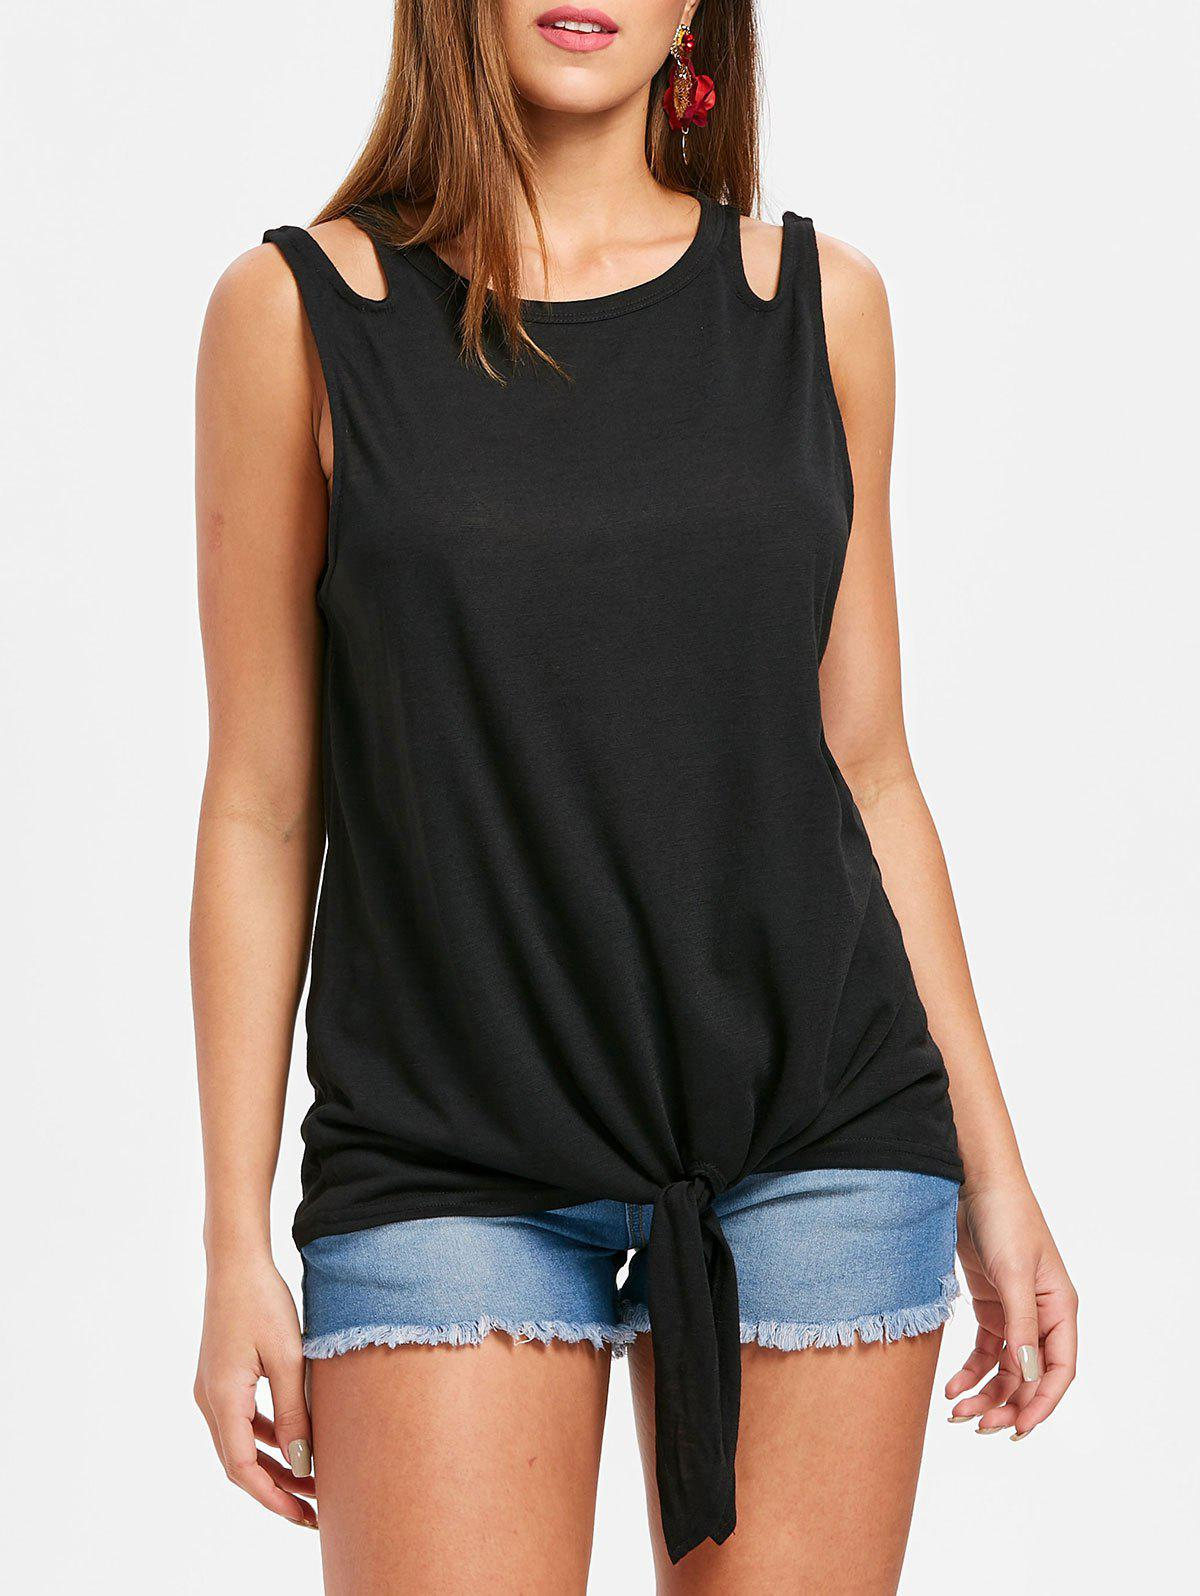 Fashion Round Neck Tie Front Tank Top